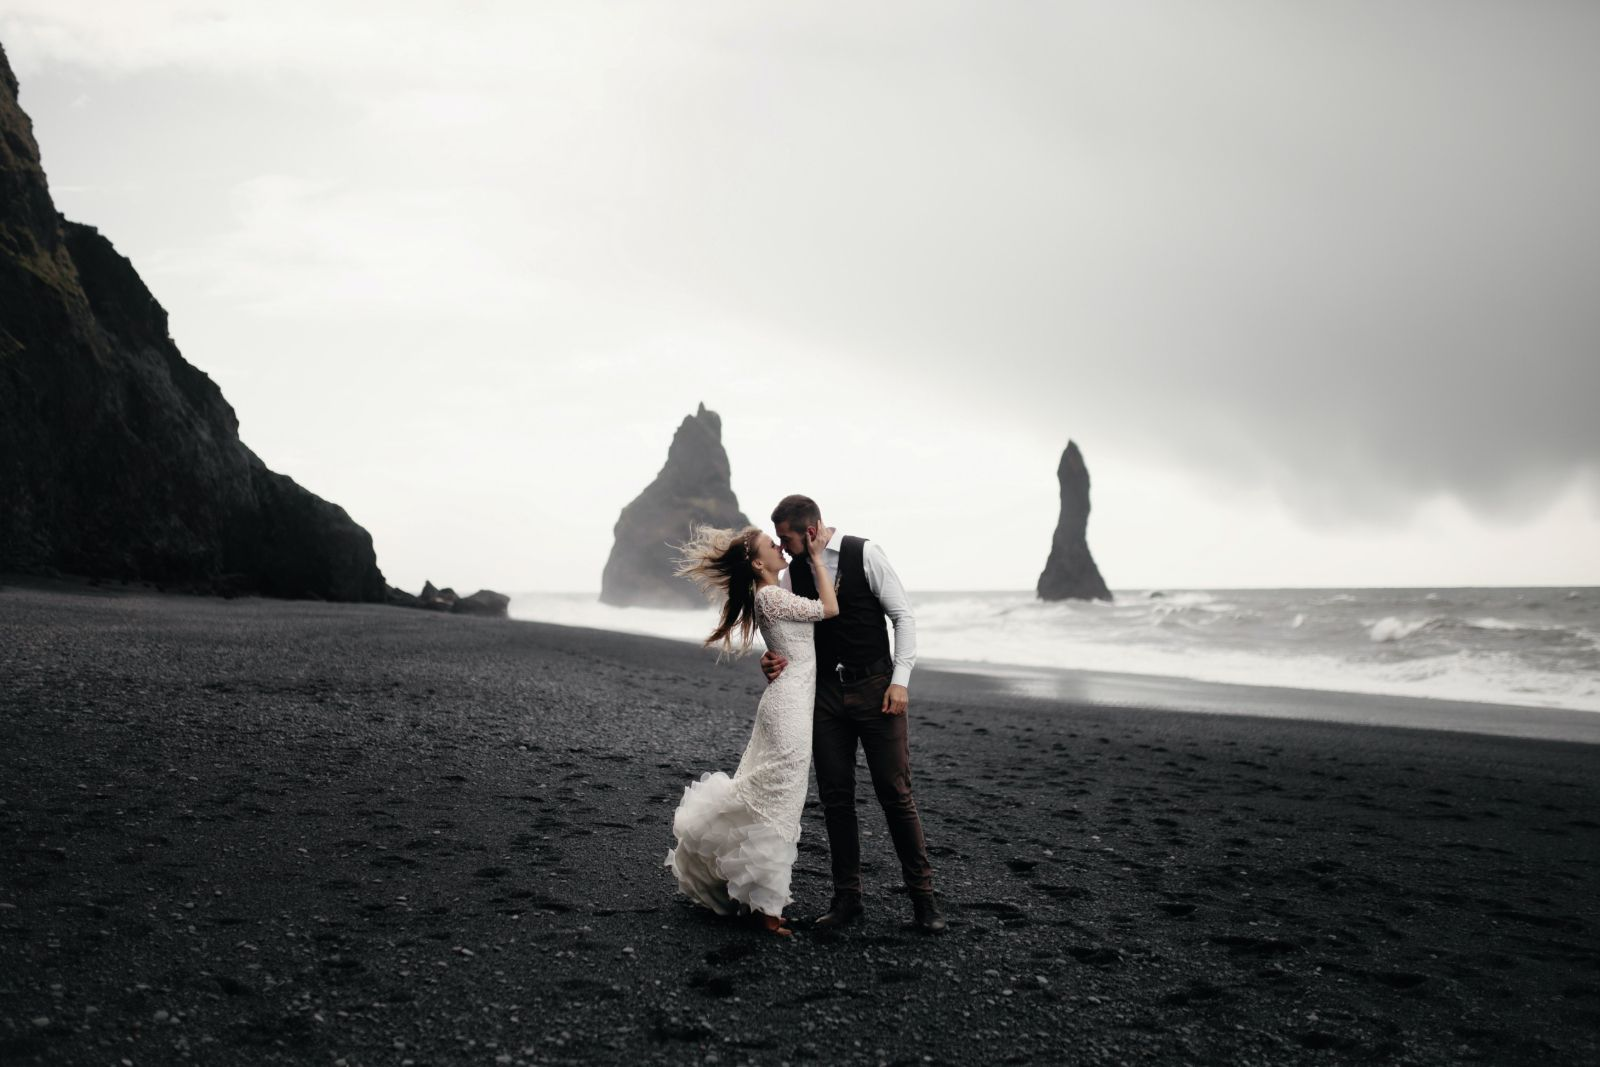 Couple kissing on a beach after an elopement wedding ceremony